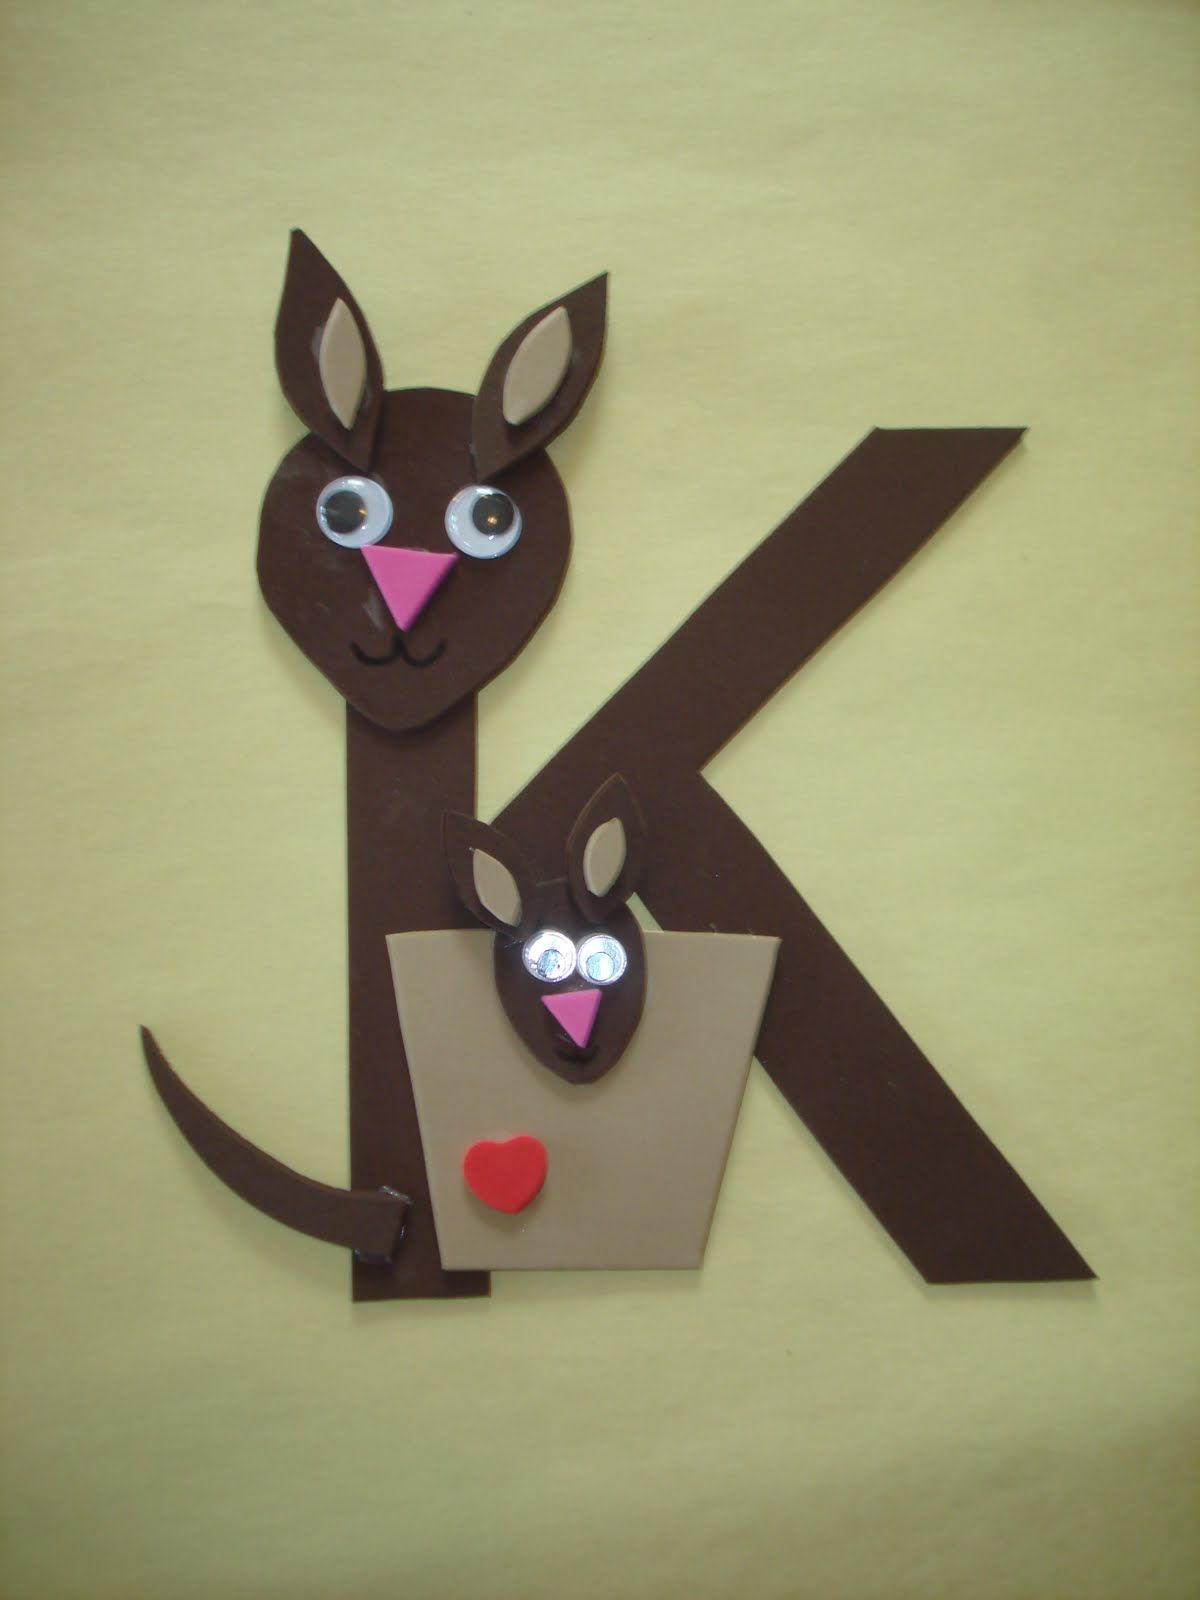 If You Are Looking For Some Fun Preschool Letter Crafts For The Letter P Try This Puff The